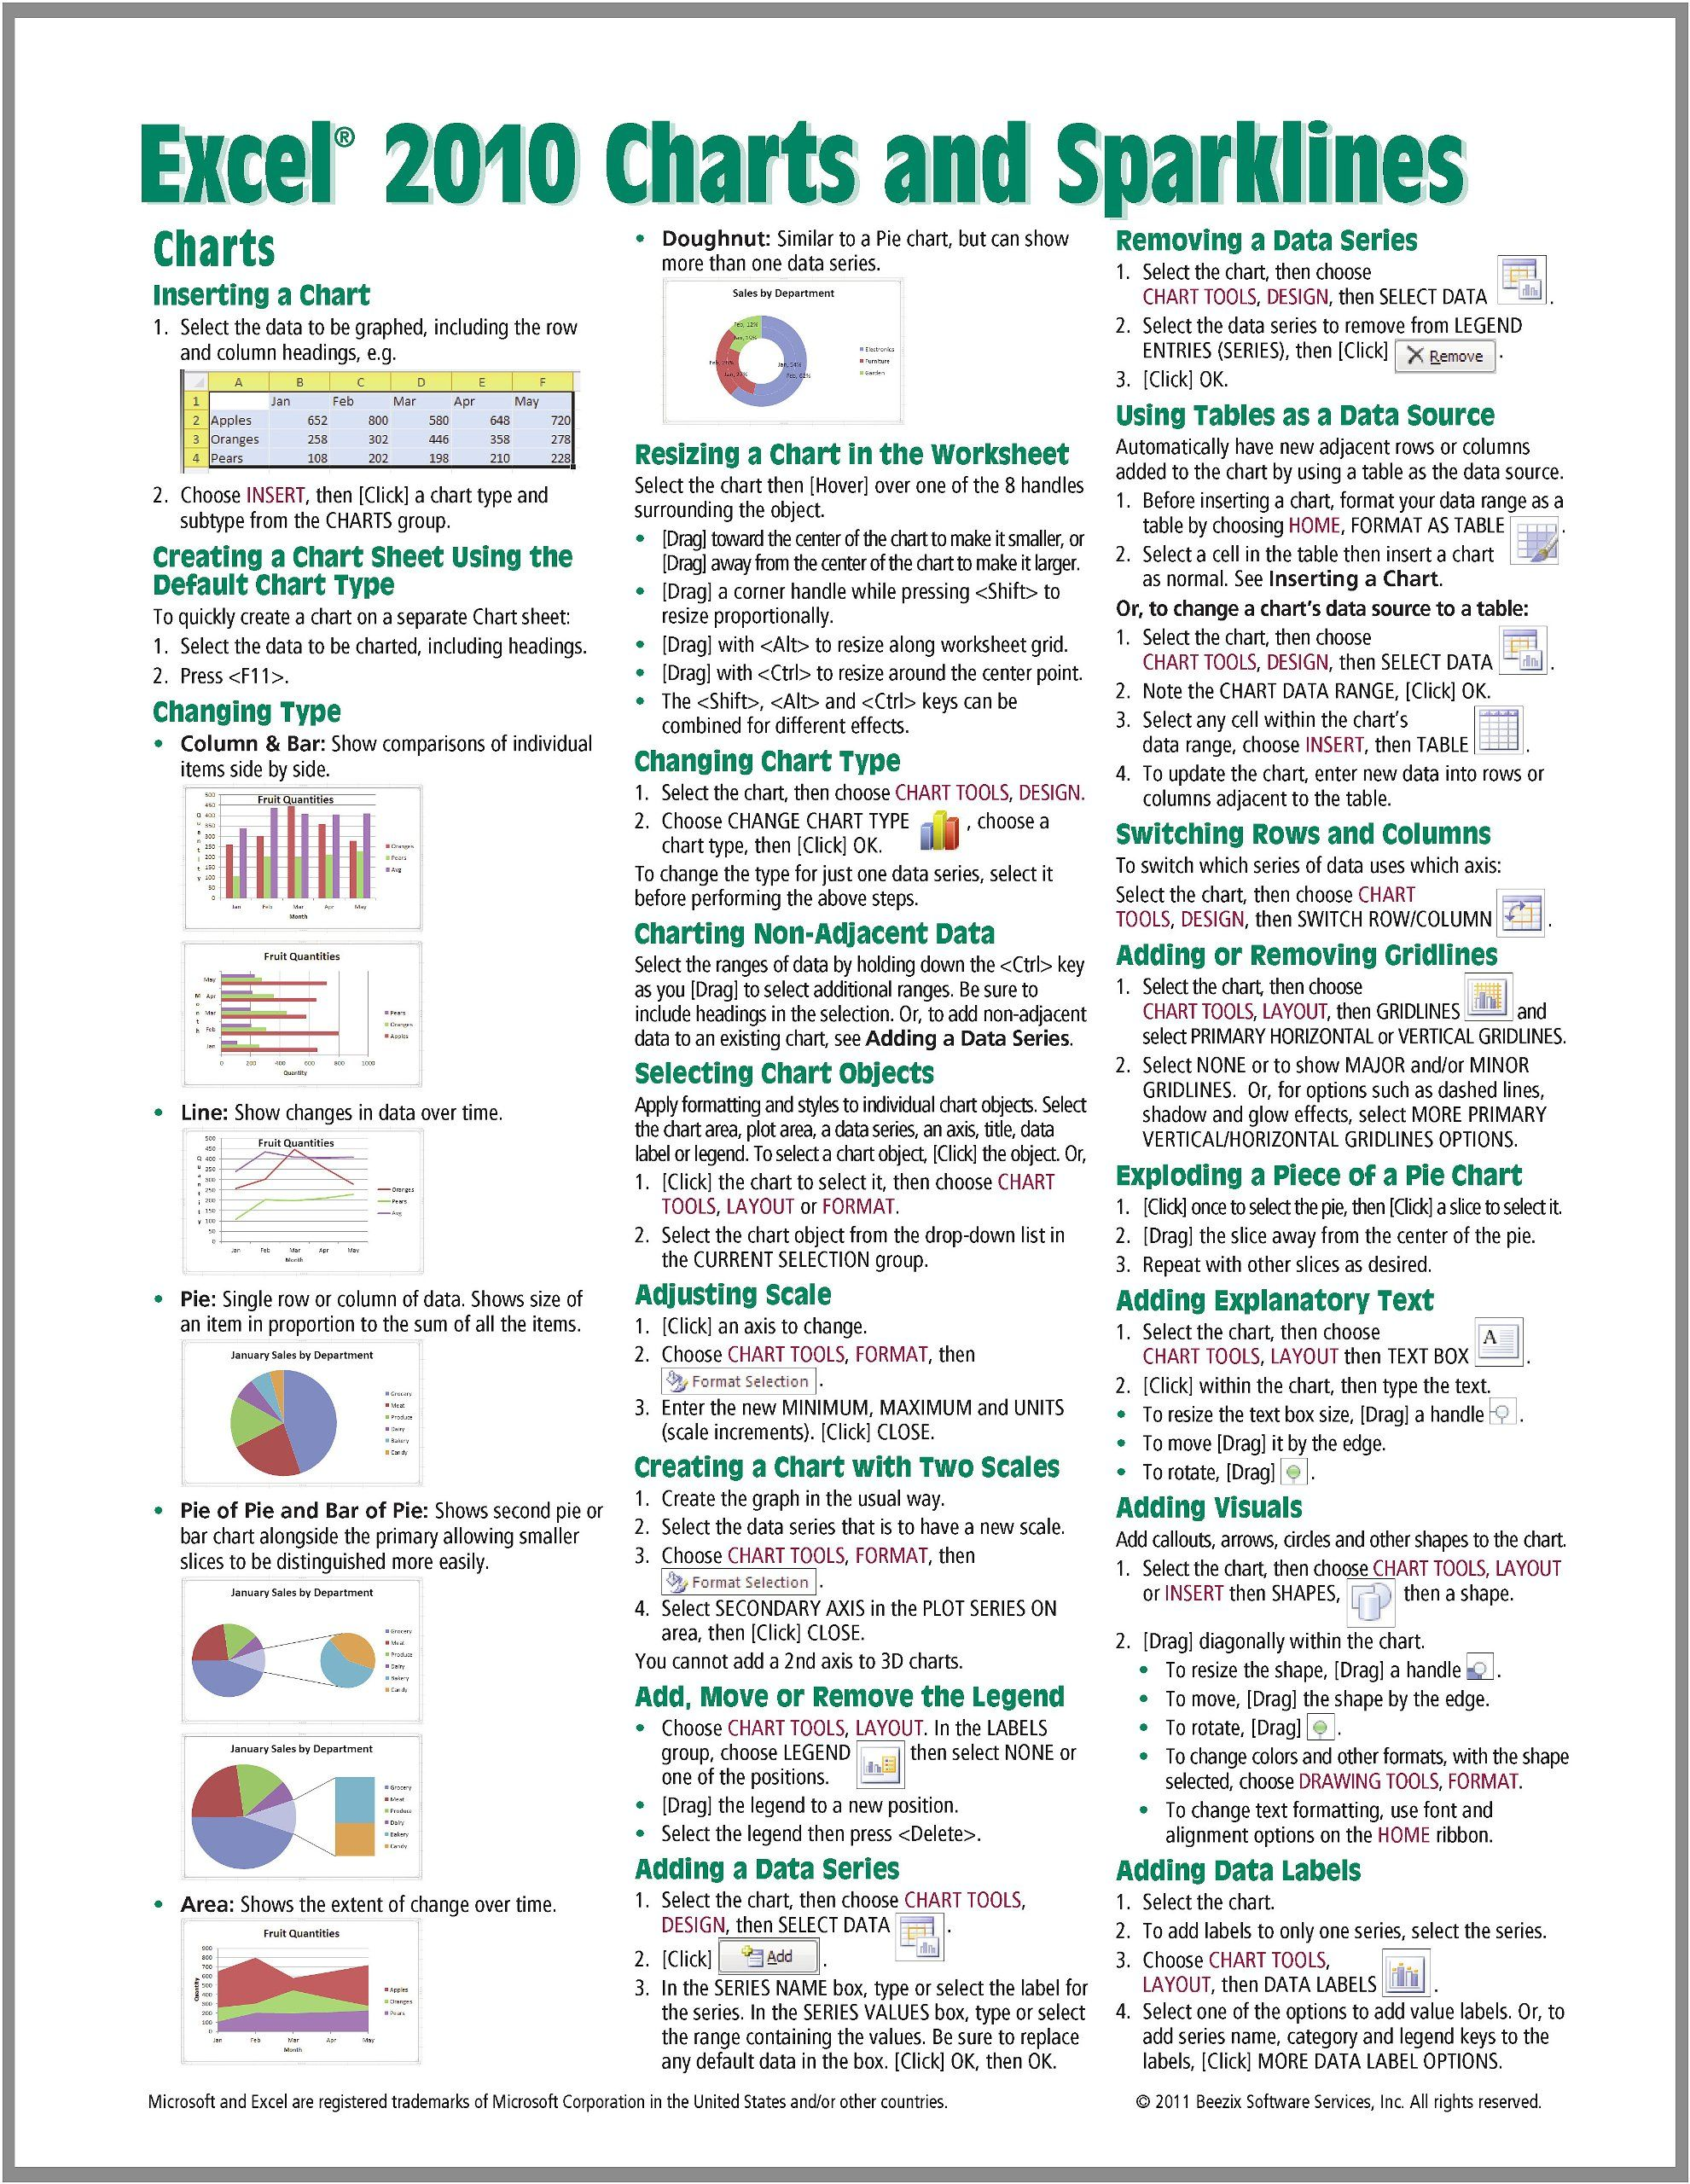 Microsoft excel 2010 charts sparklines quick reference guide microsoft excel 2010 charts sparklines quick reference guide cheat sheet of instructions tips geenschuldenfo Choice Image